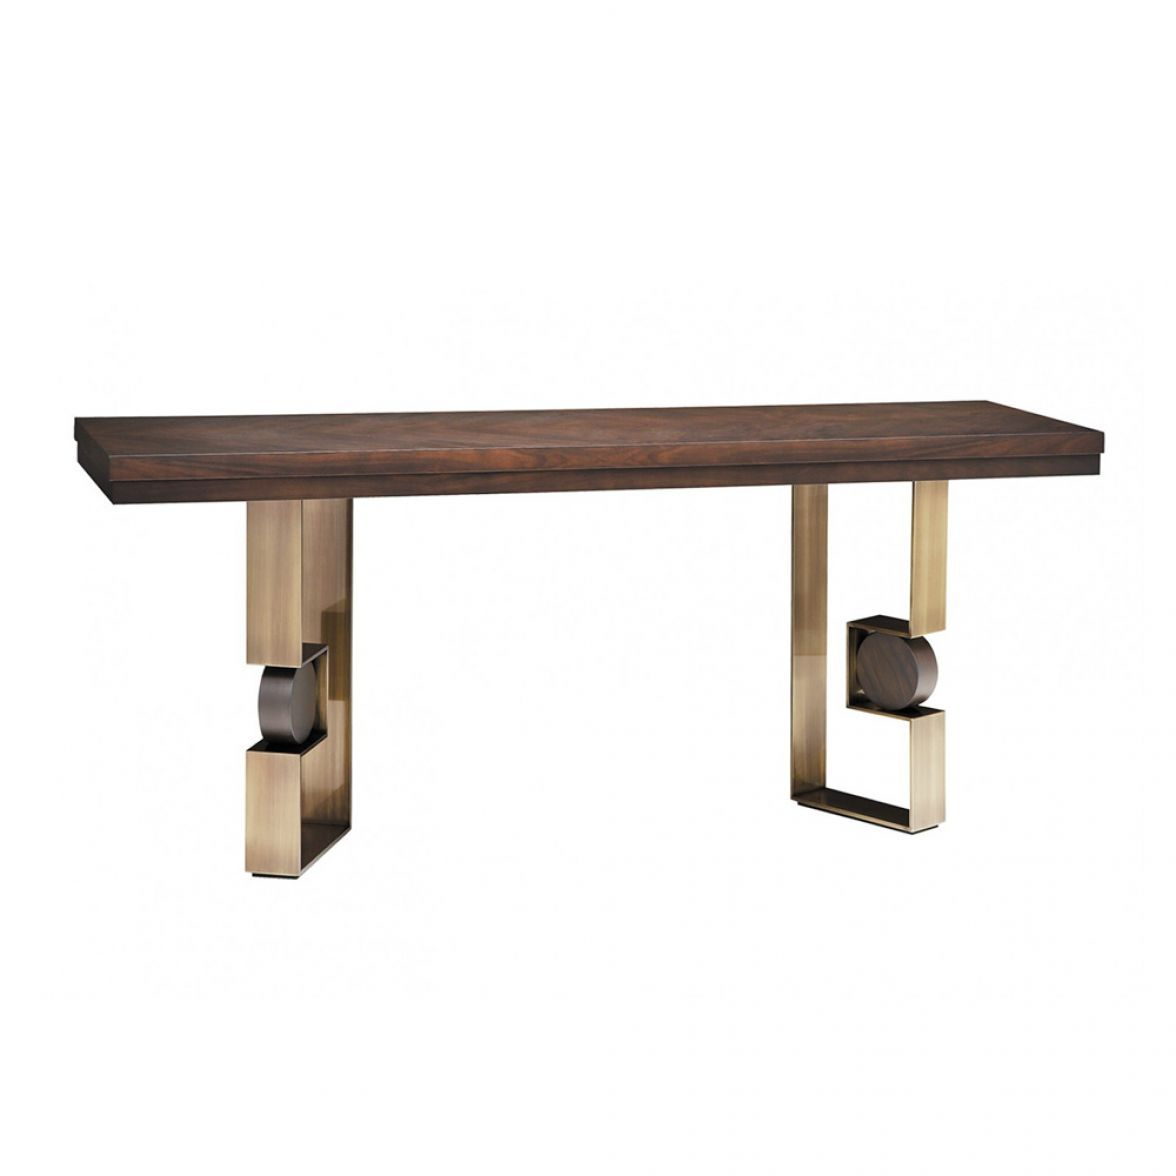 Rodrigo console table